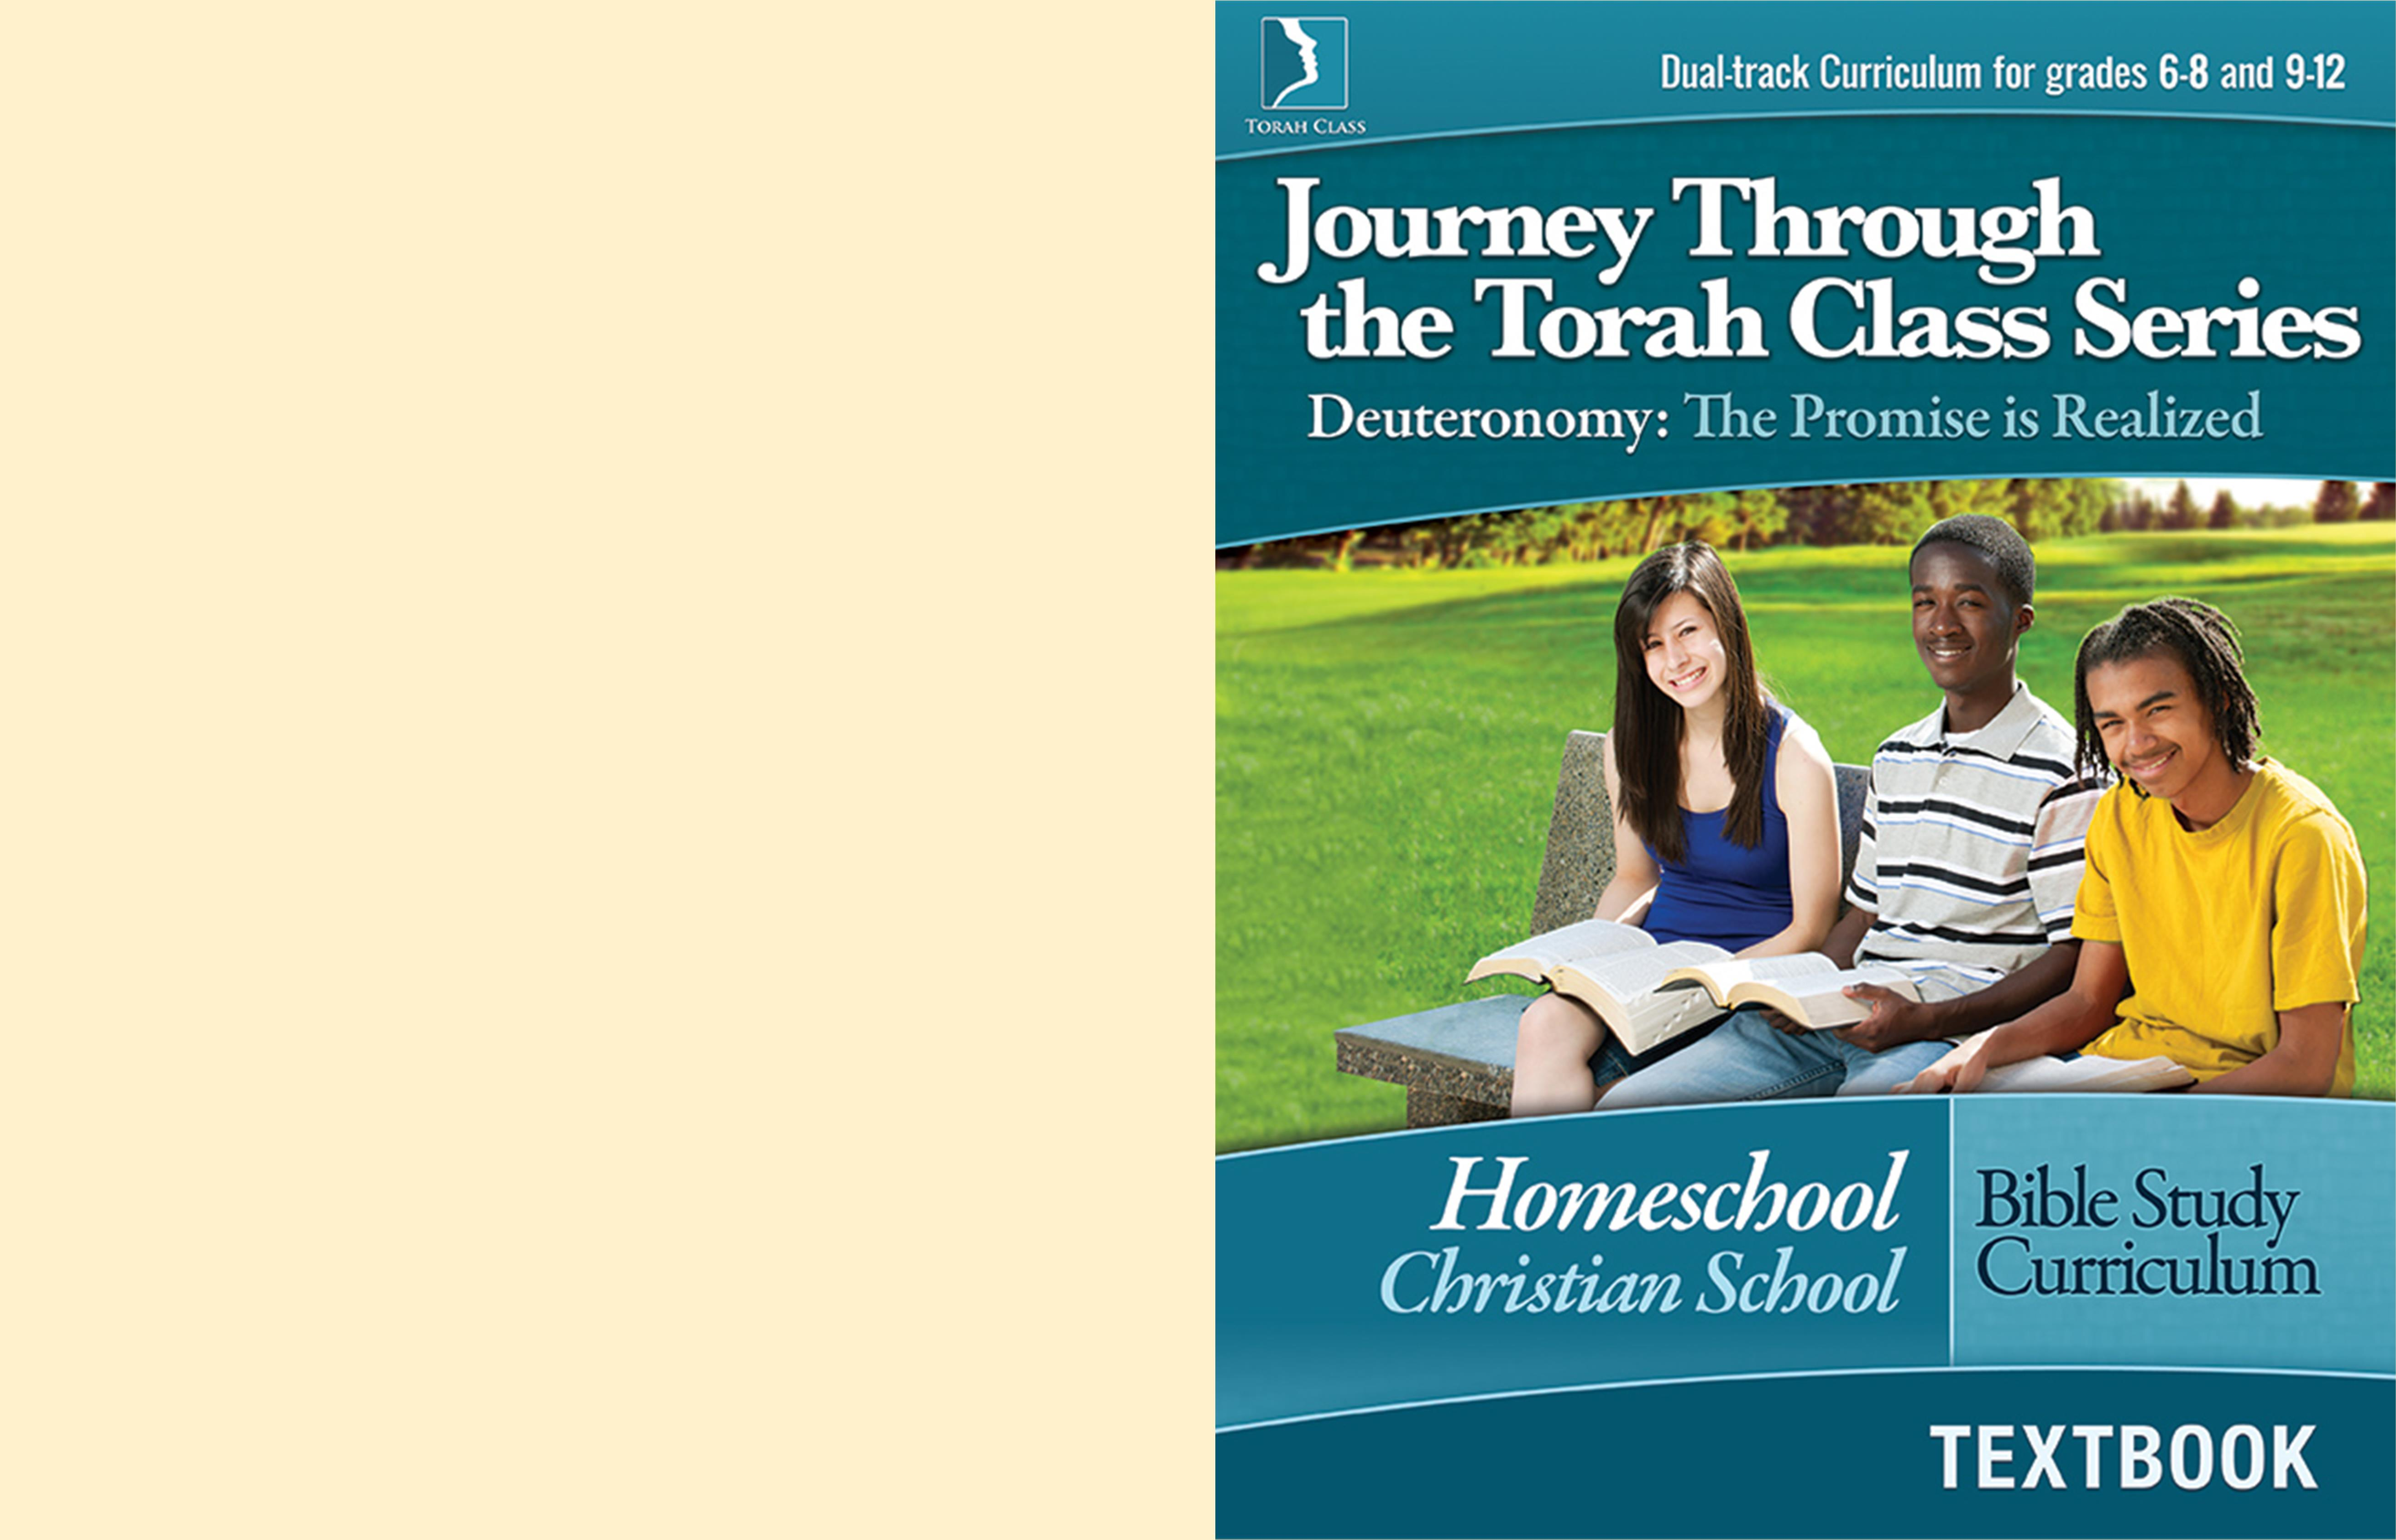 Deuteronomy: The Promise is Realized, Homeschool Textbook cover image